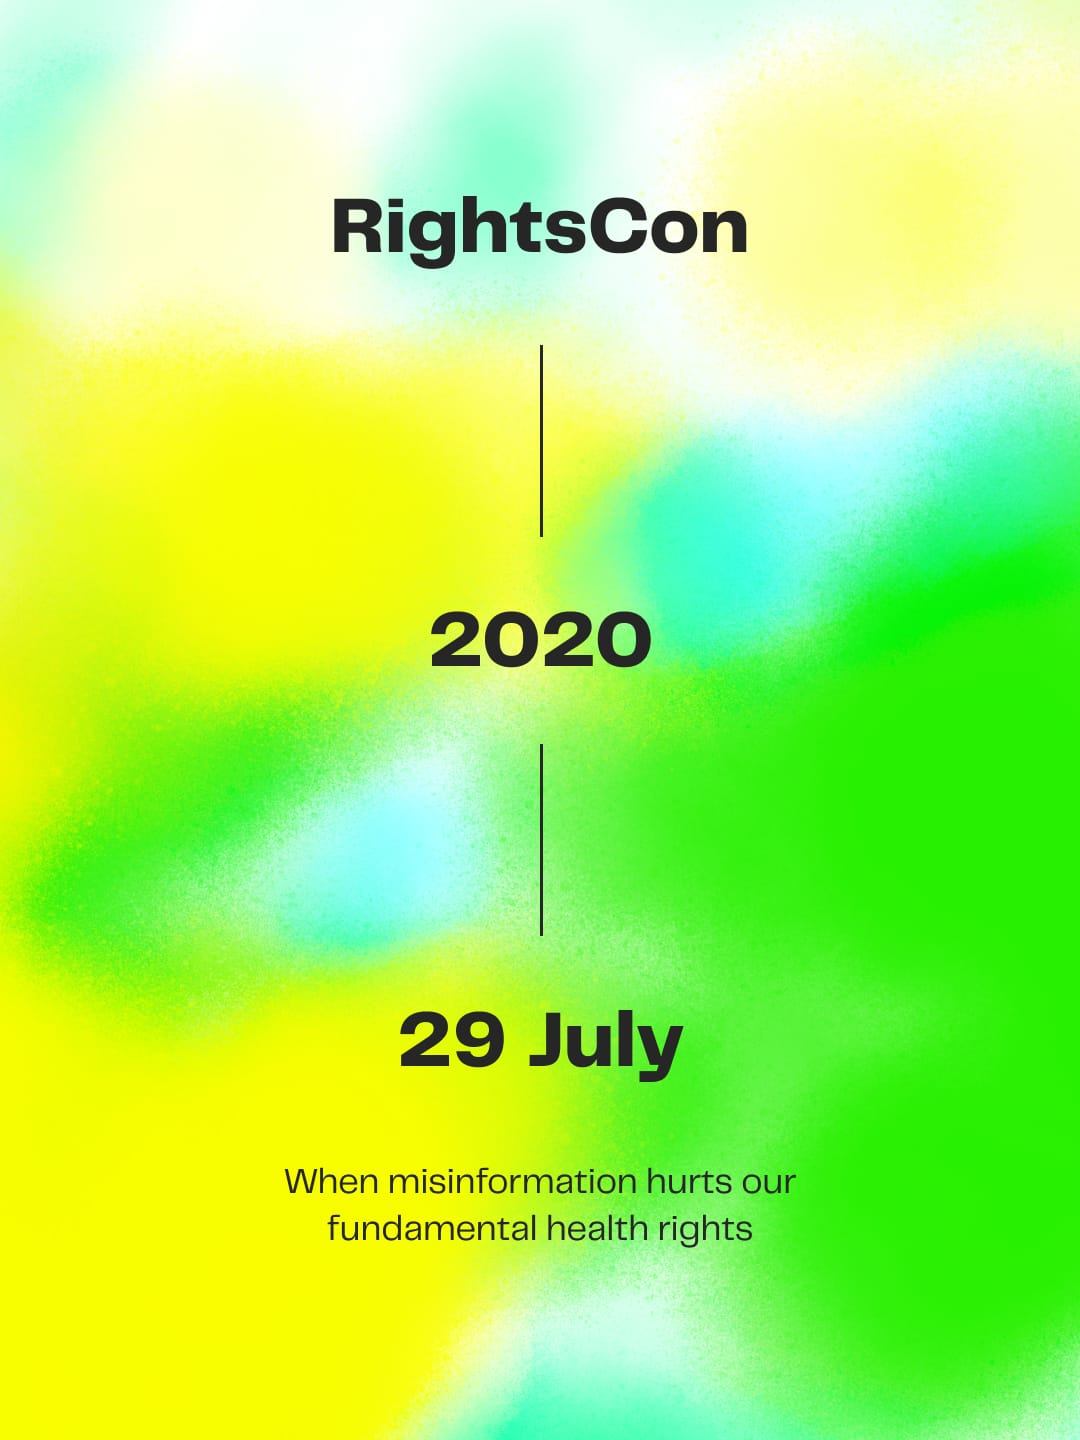 RightsCon 2020: When misinformation hurts our fundamental health rights